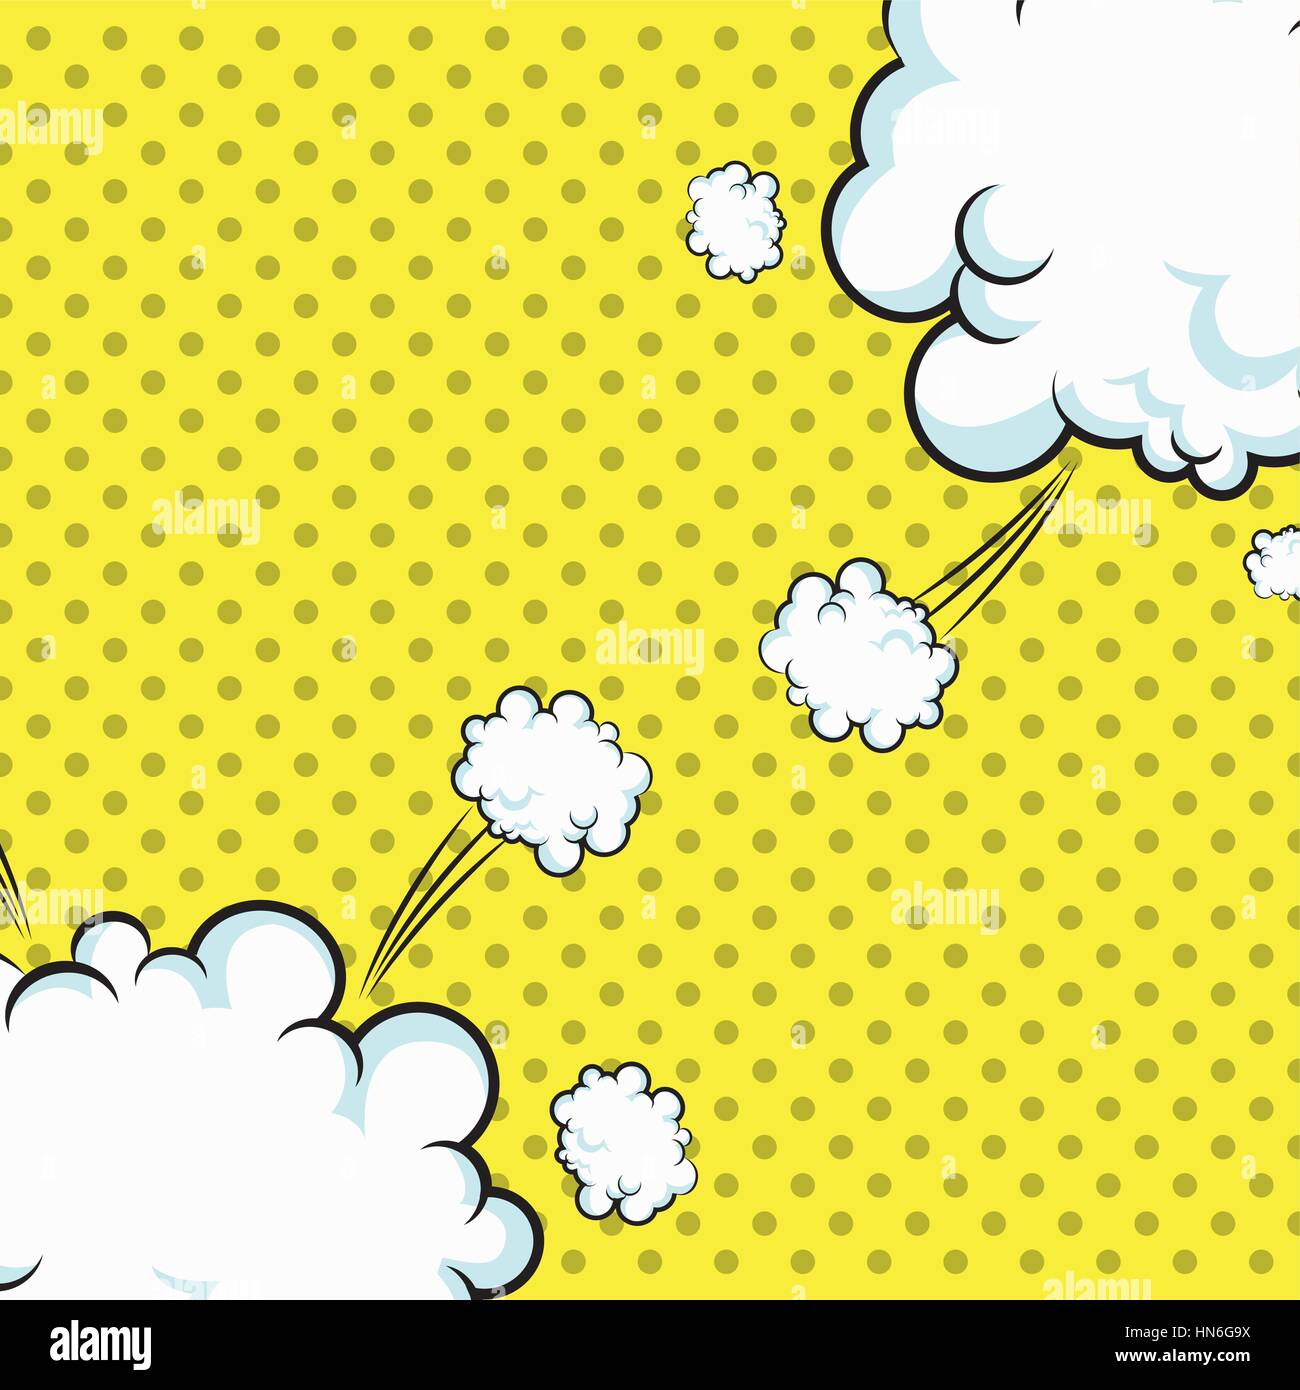 pop art clouds explotion dotted design - Stock Vector